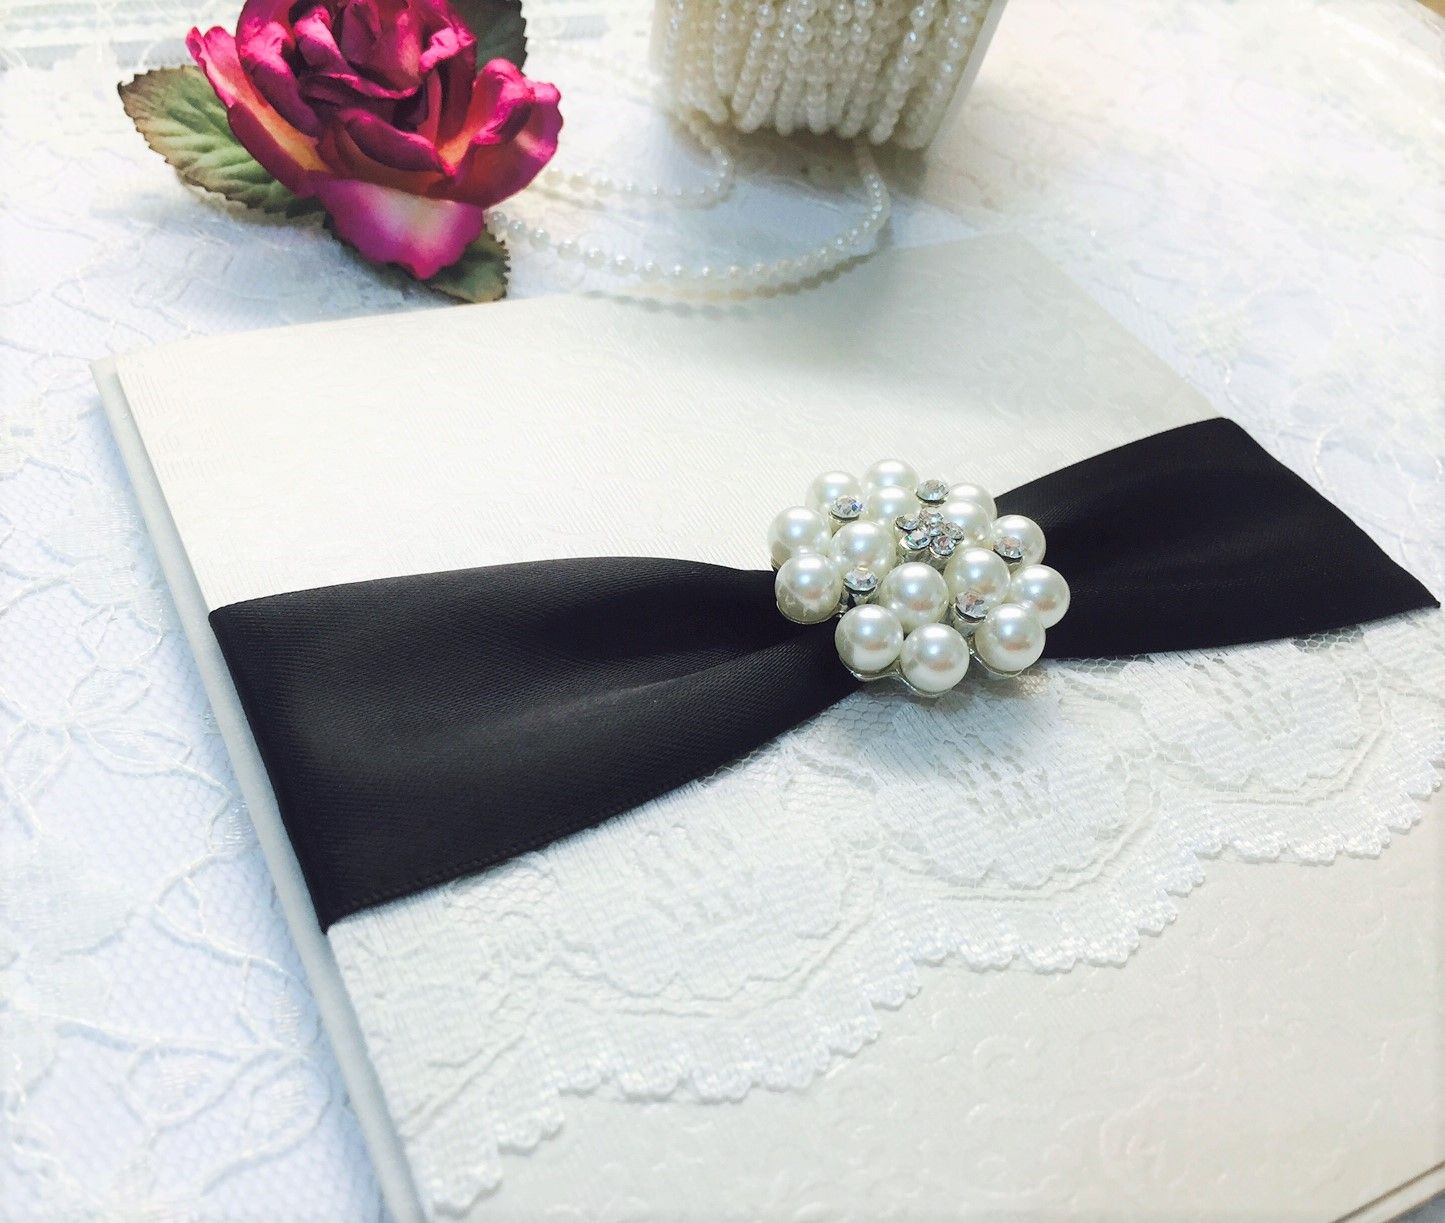 Boxed luxury lace invitation with black satin ribbon and brooch